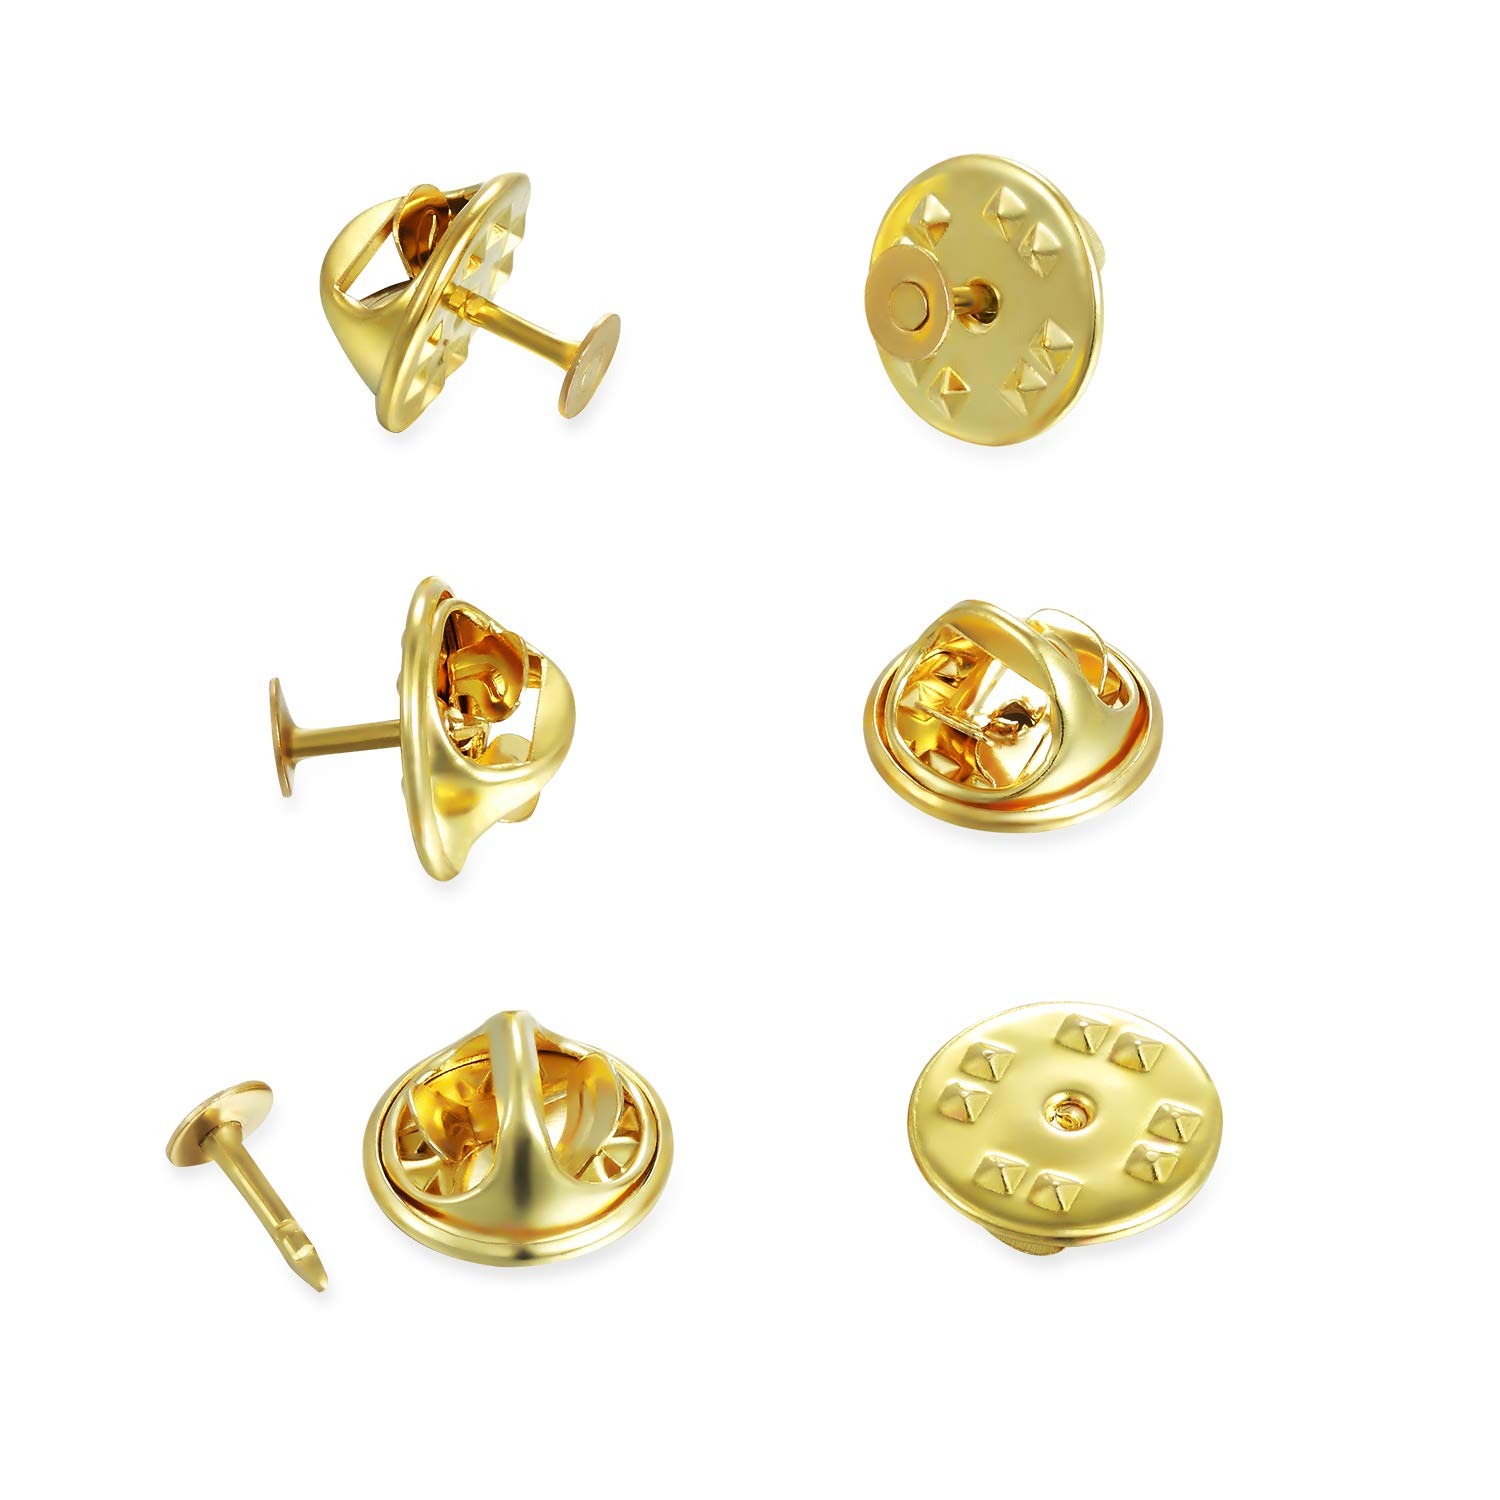 SCStyle 150 Pairs Butterfly Clutch Tie Tacks Pin Backs Locking Clasp Replacement, Blank Pins for Craft Making and Storage Case - Golden